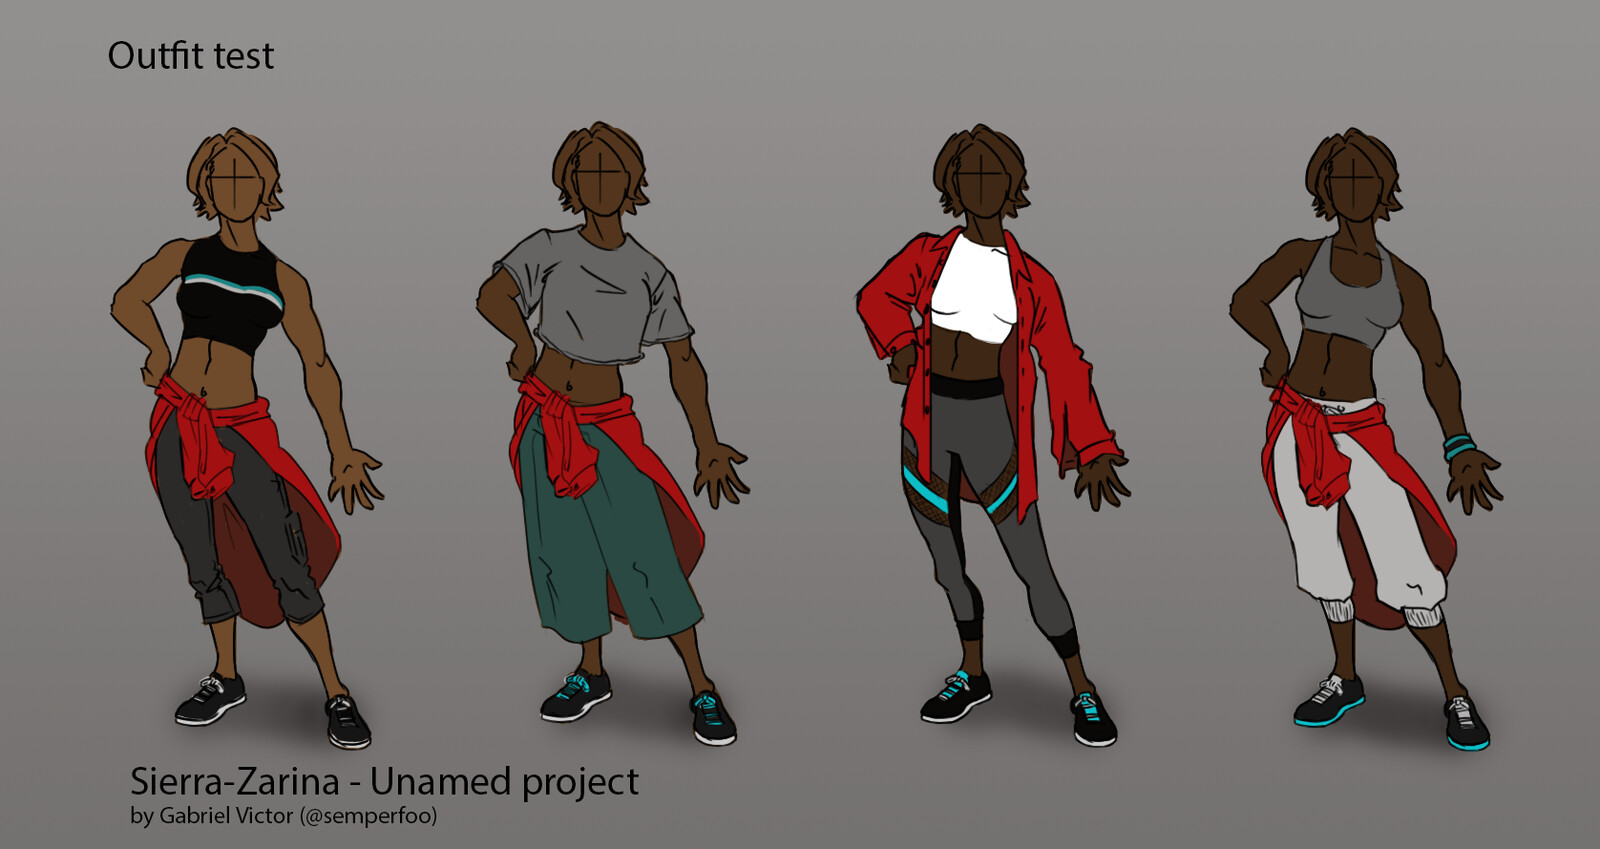 Character outfit and skin tone test